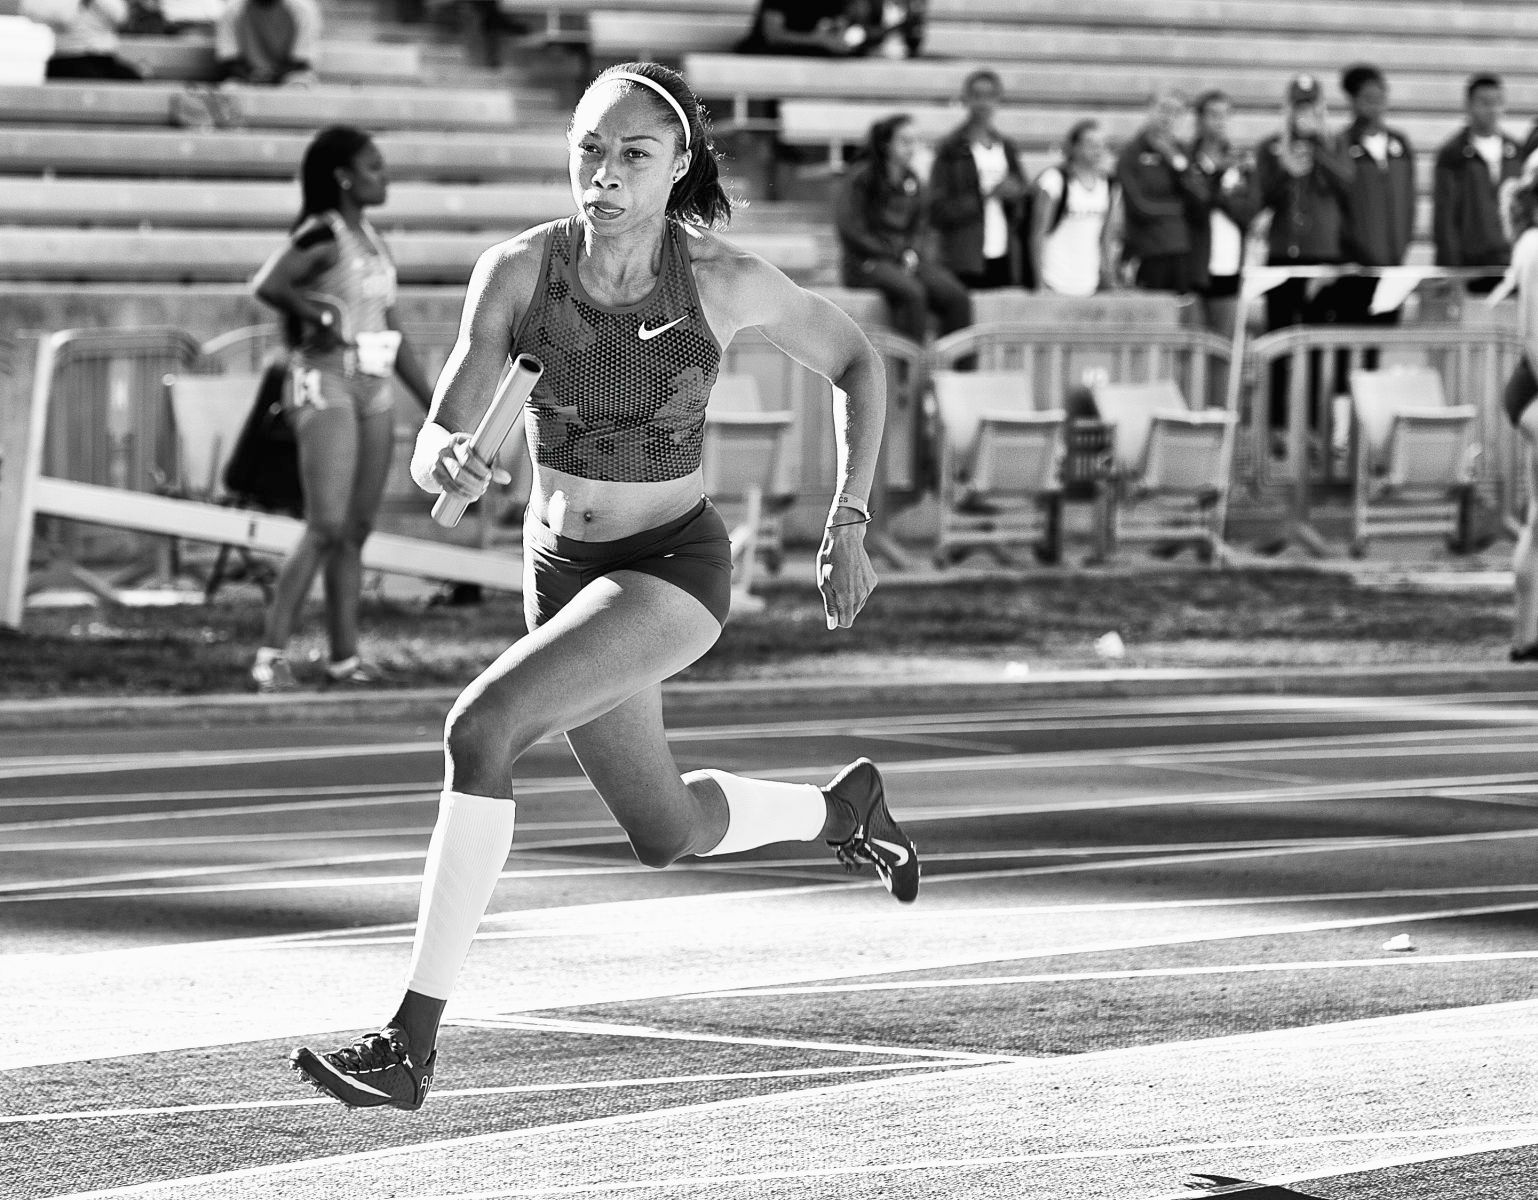 1jjk_rafer_ucla_2015_allyson_felix_bw_jeff_cohen_photo_20150411_930_copy.jpg